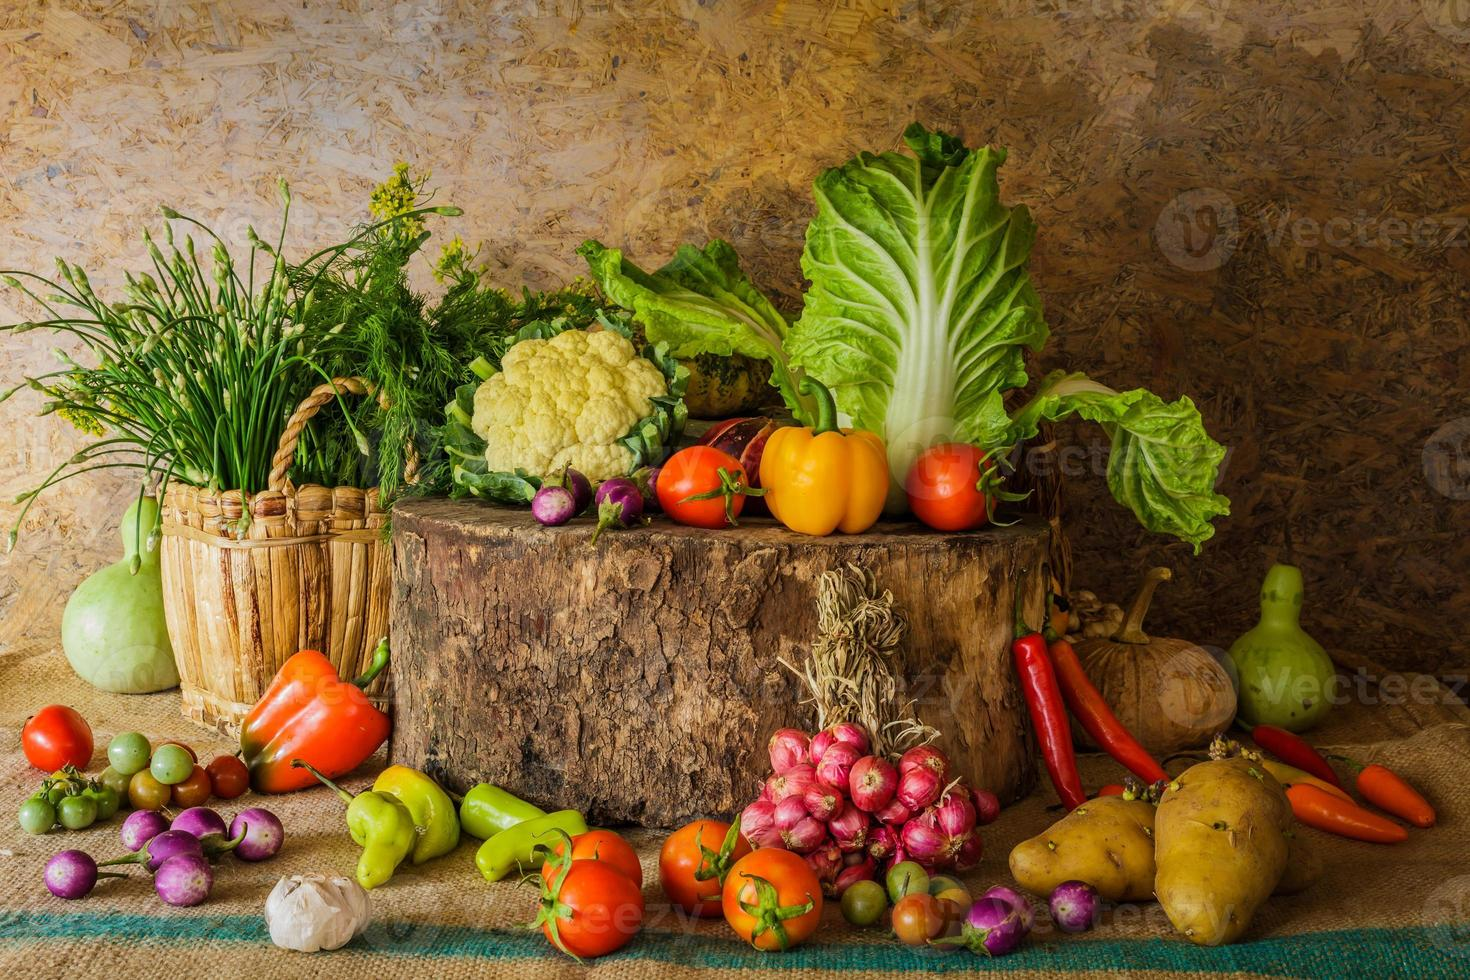 still life  Vegetables, Herbs and Fruits. photo